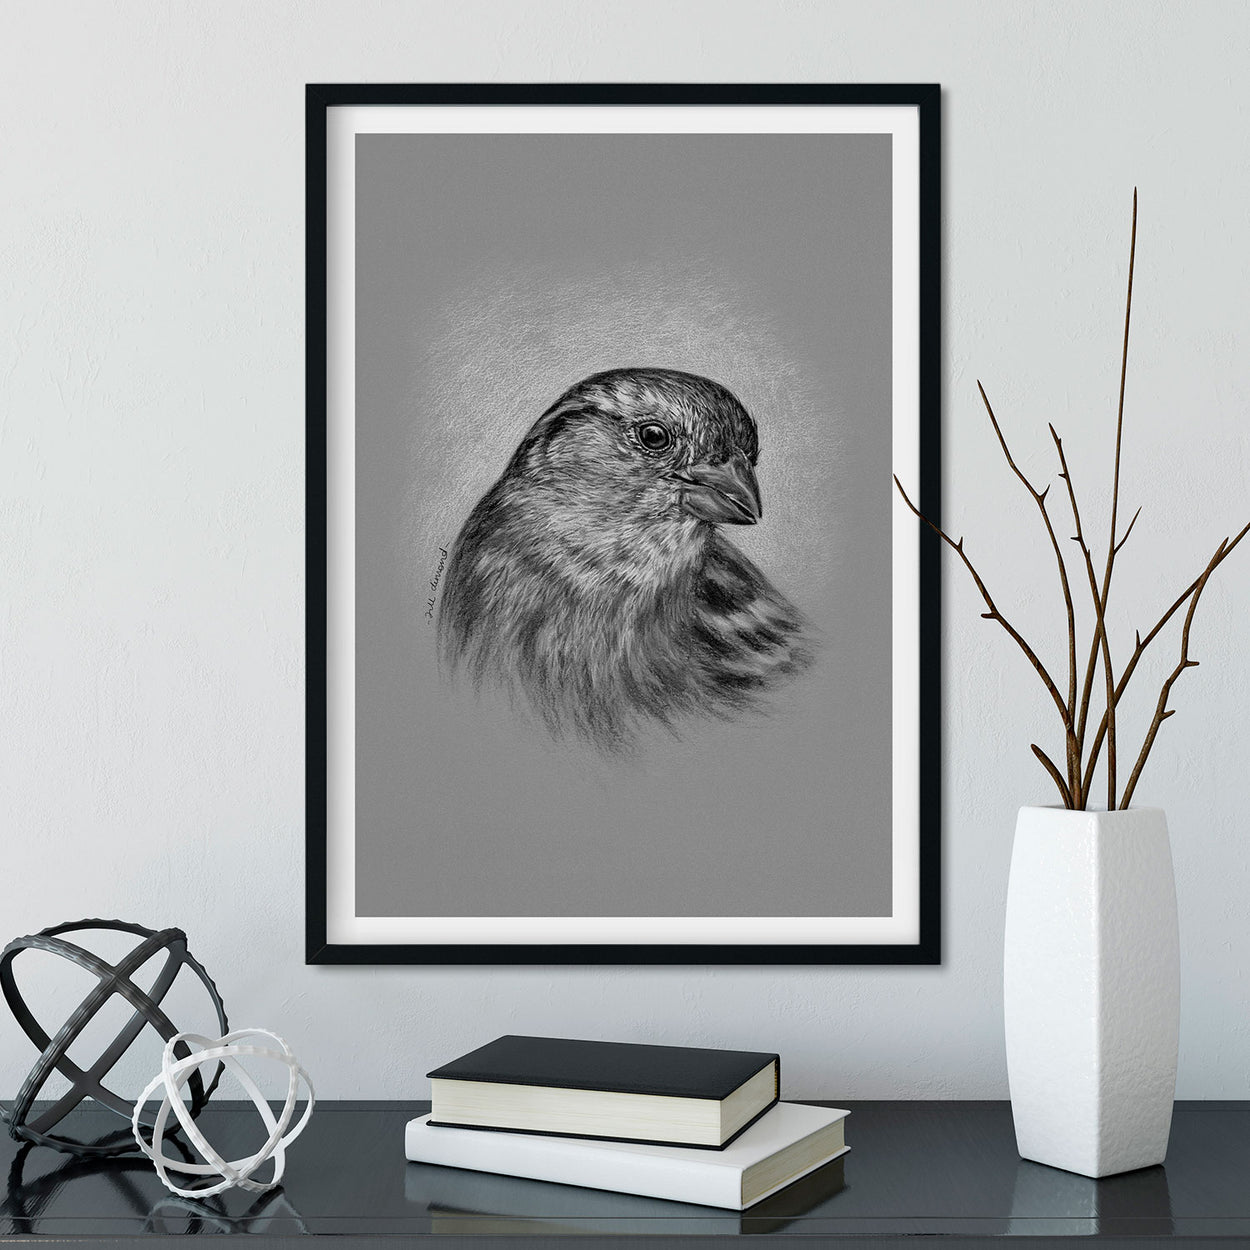 Sparrow Wall Art in Frame Garden Birds - The Thriving Wild